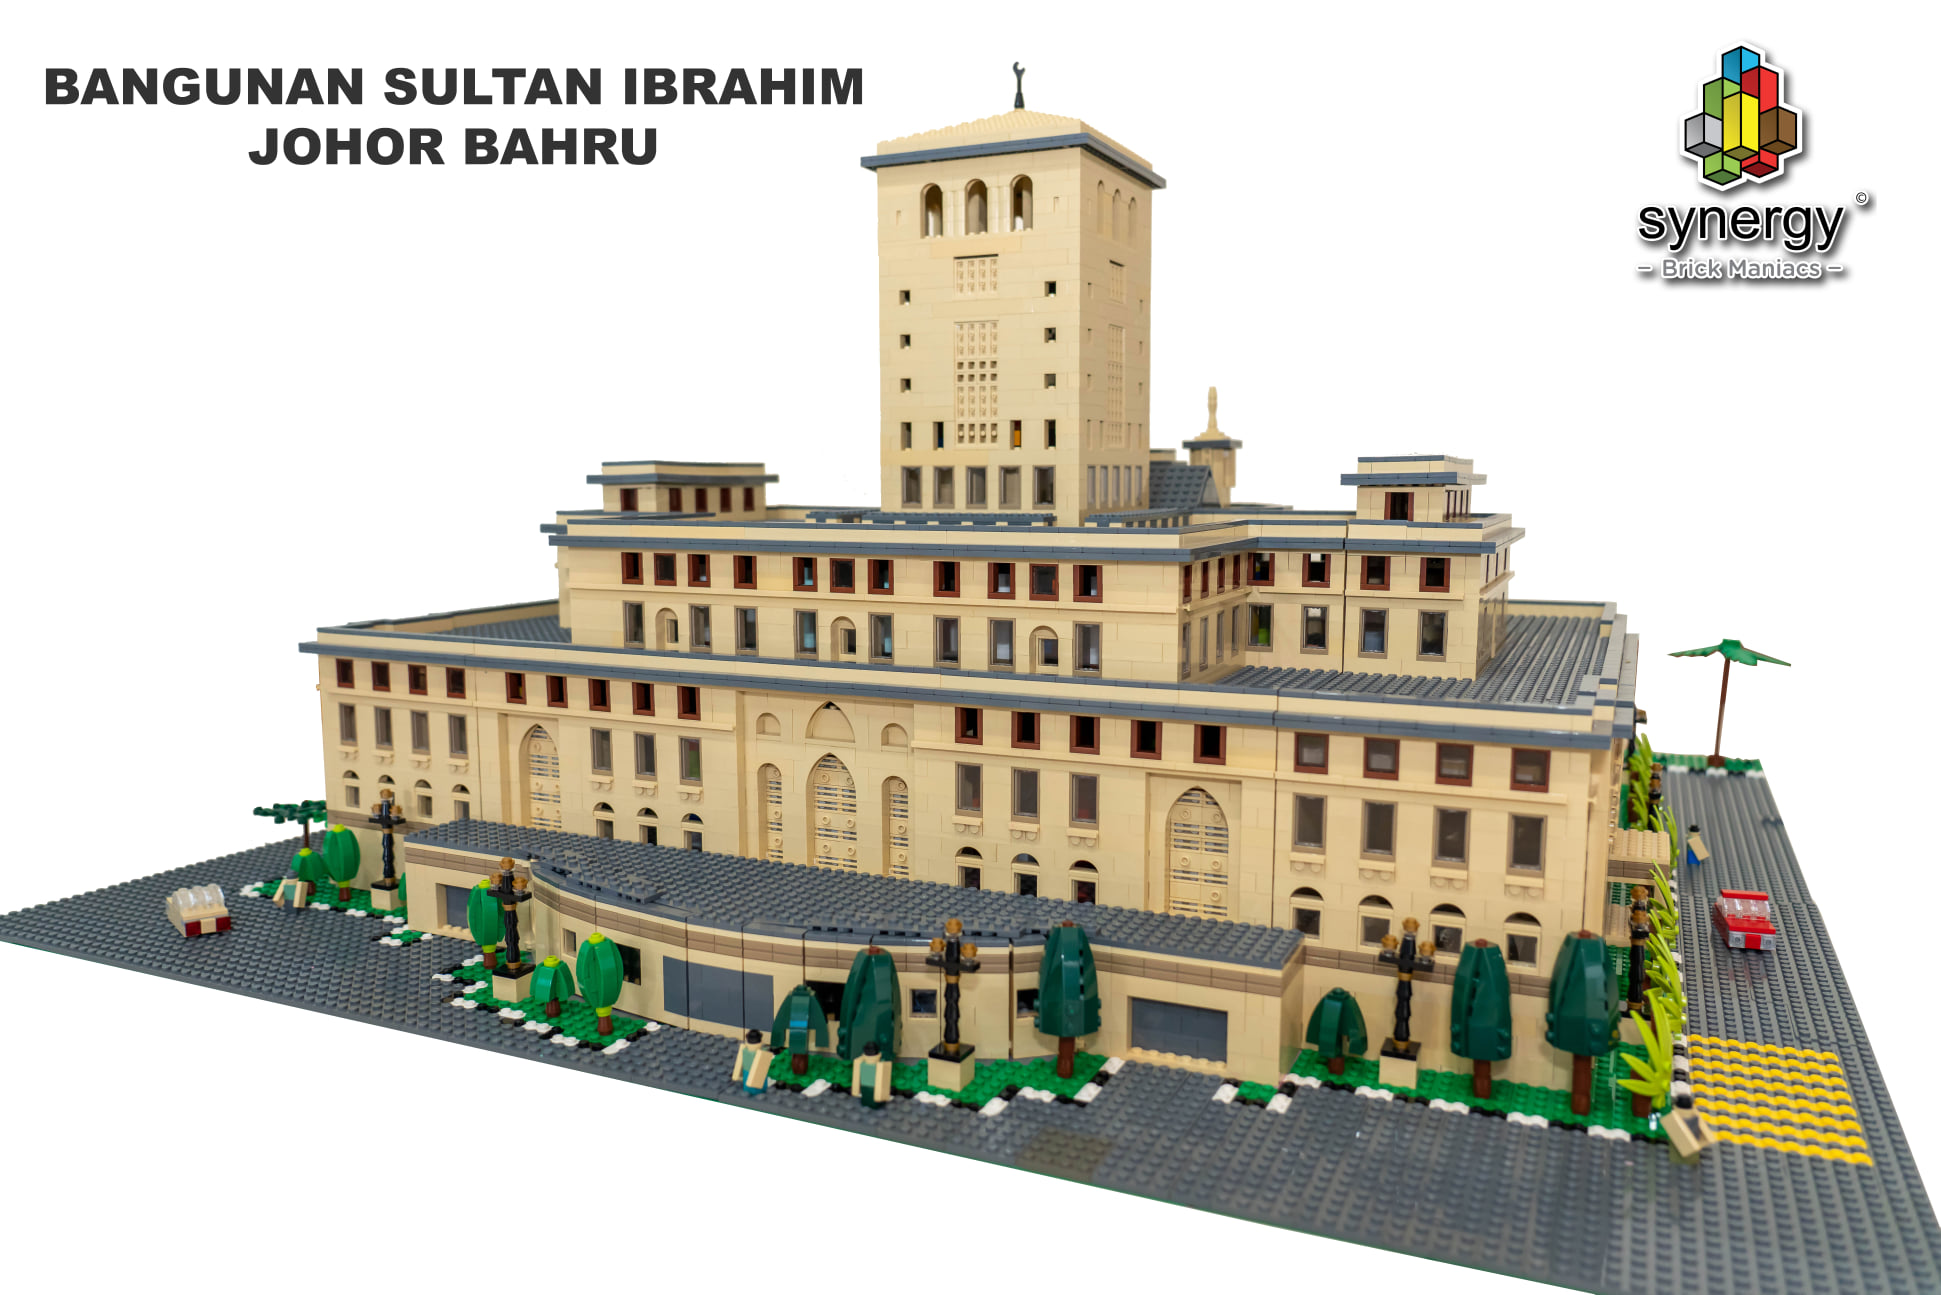 A rendering of the building.